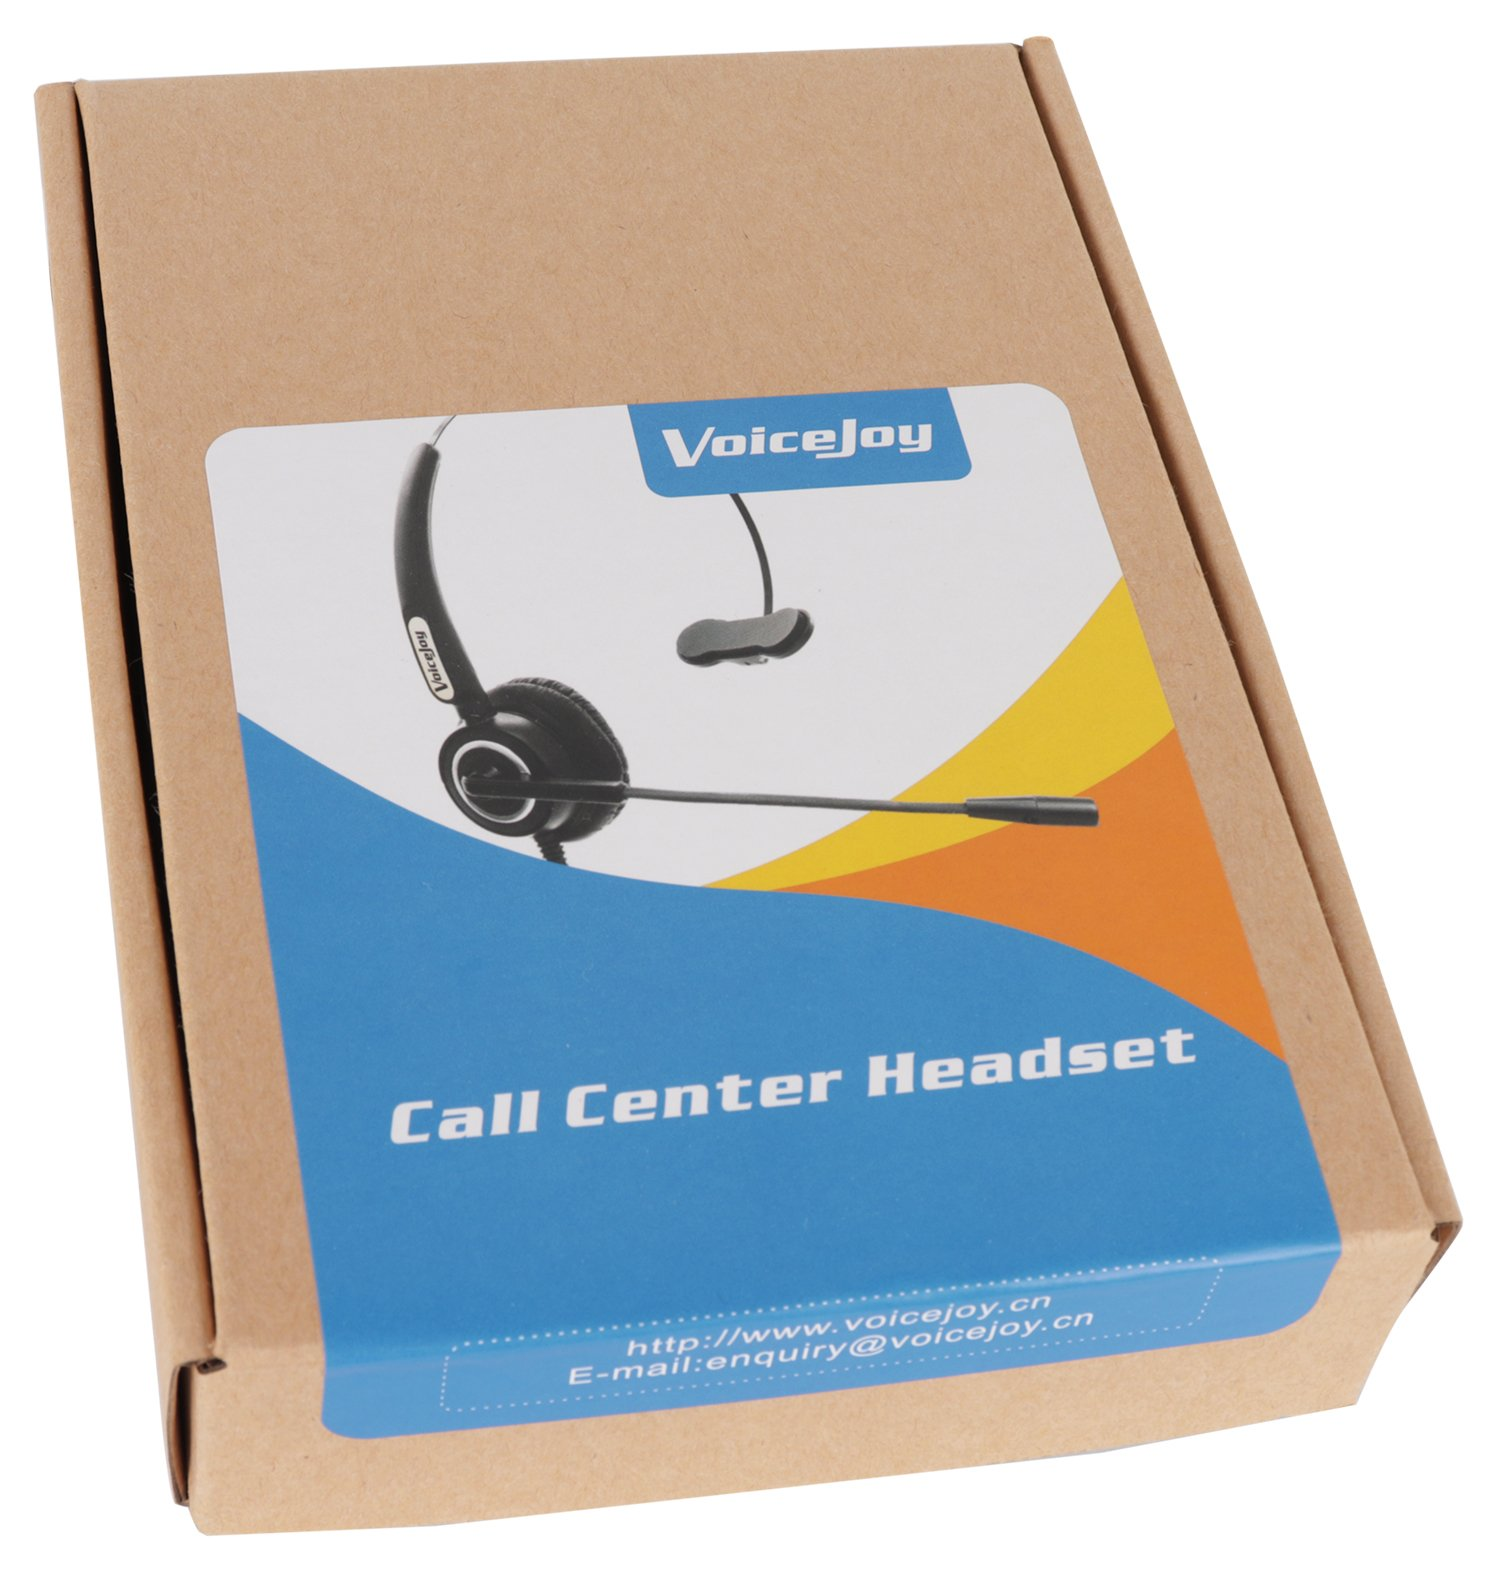 VoiceJoy Call Center Noise Cancelling Corded Monaural Headset Headphone with Mic Microphone with USB Plug For Computer and Laptop, Volume Control and Mute Switch